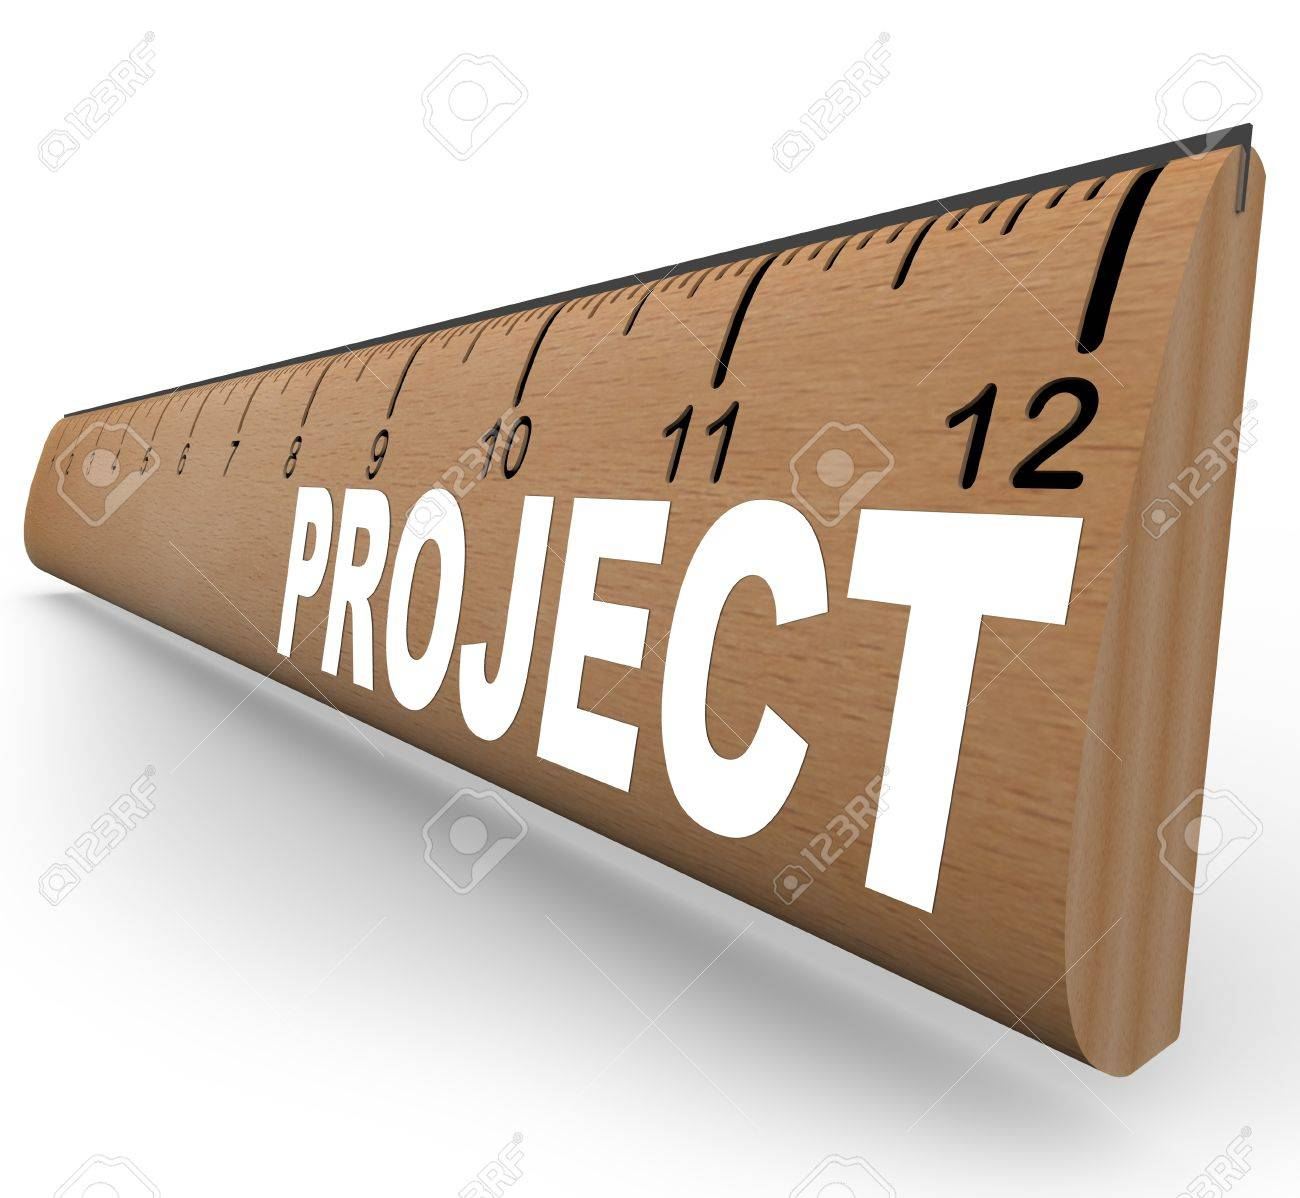 Project assignment